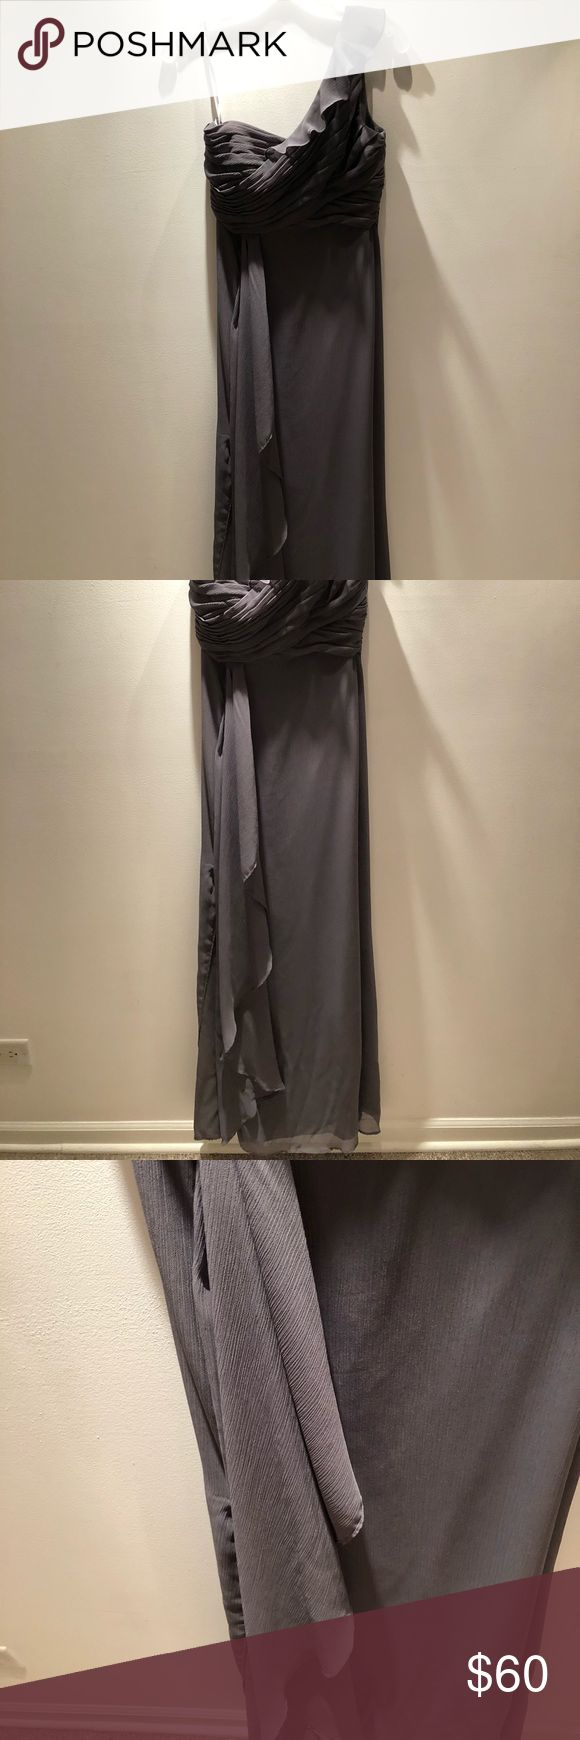 """Grey Bridesmaid Dress Worn ONCE. Breathable, light fabric that made it easy for dancing. Reached my ankles & I was 5'4"""". Flowy & elegant. Made in China. David's Bridal Dresses Wedding"""